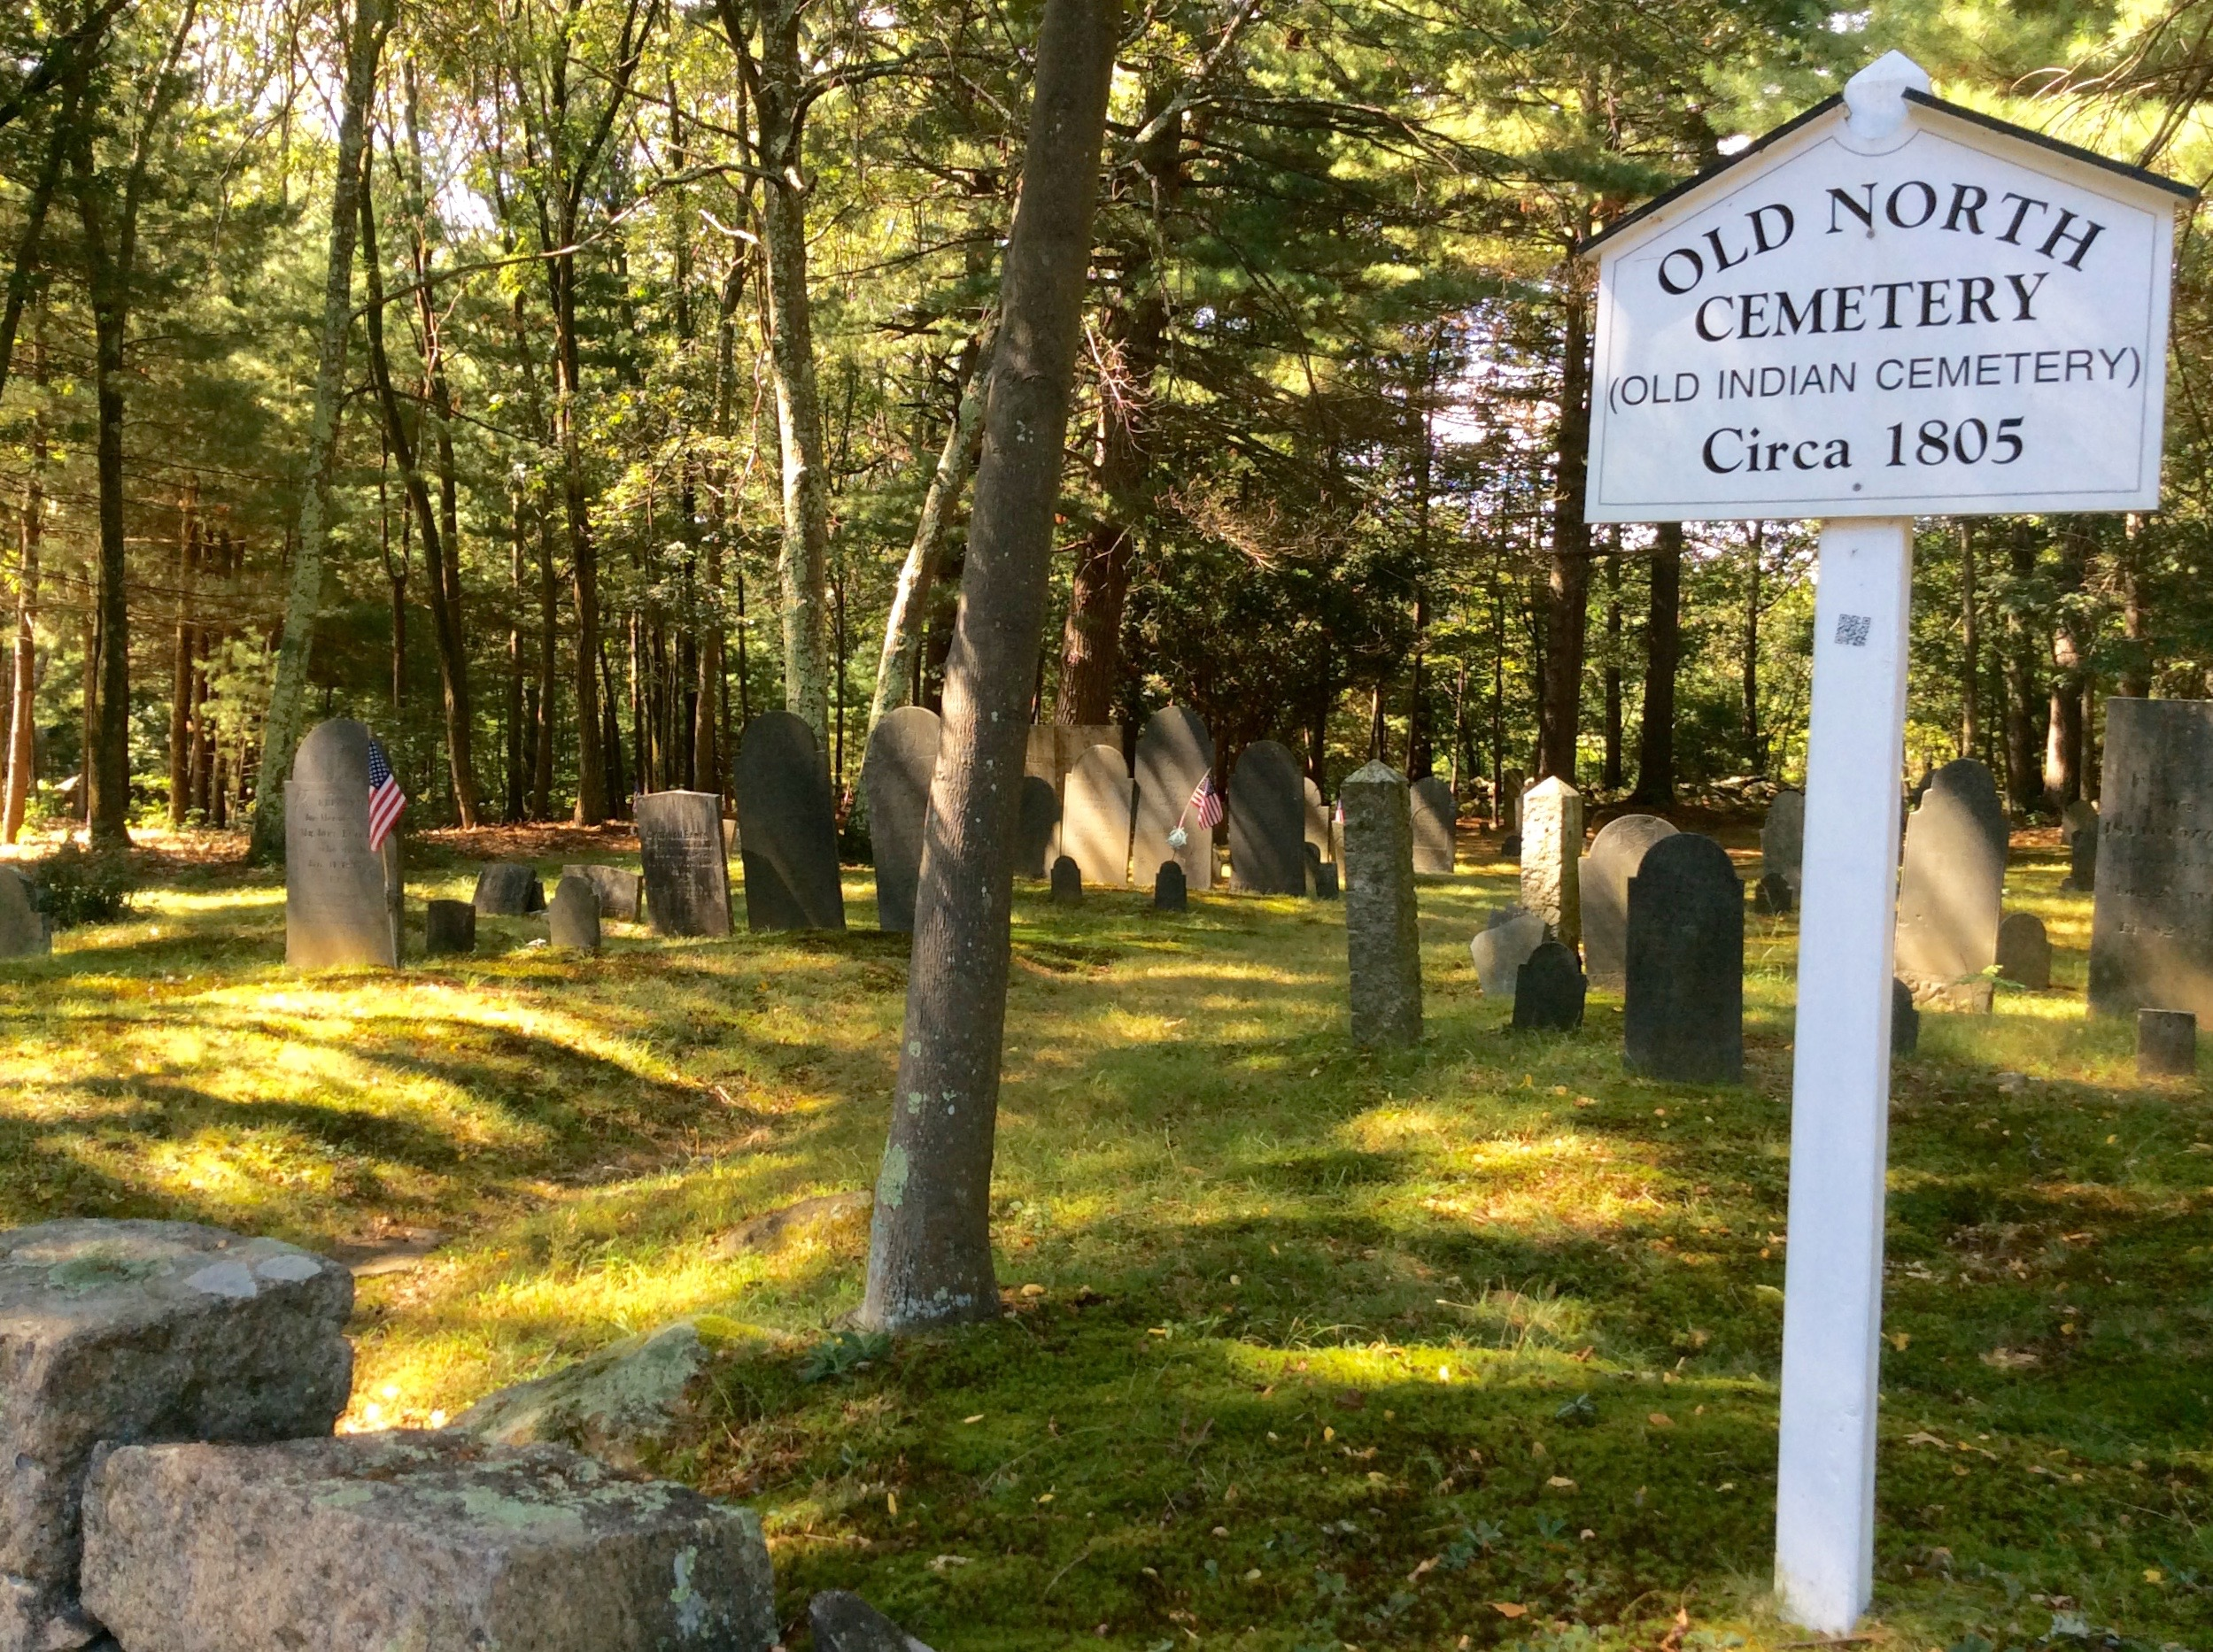 Old North Cemetery